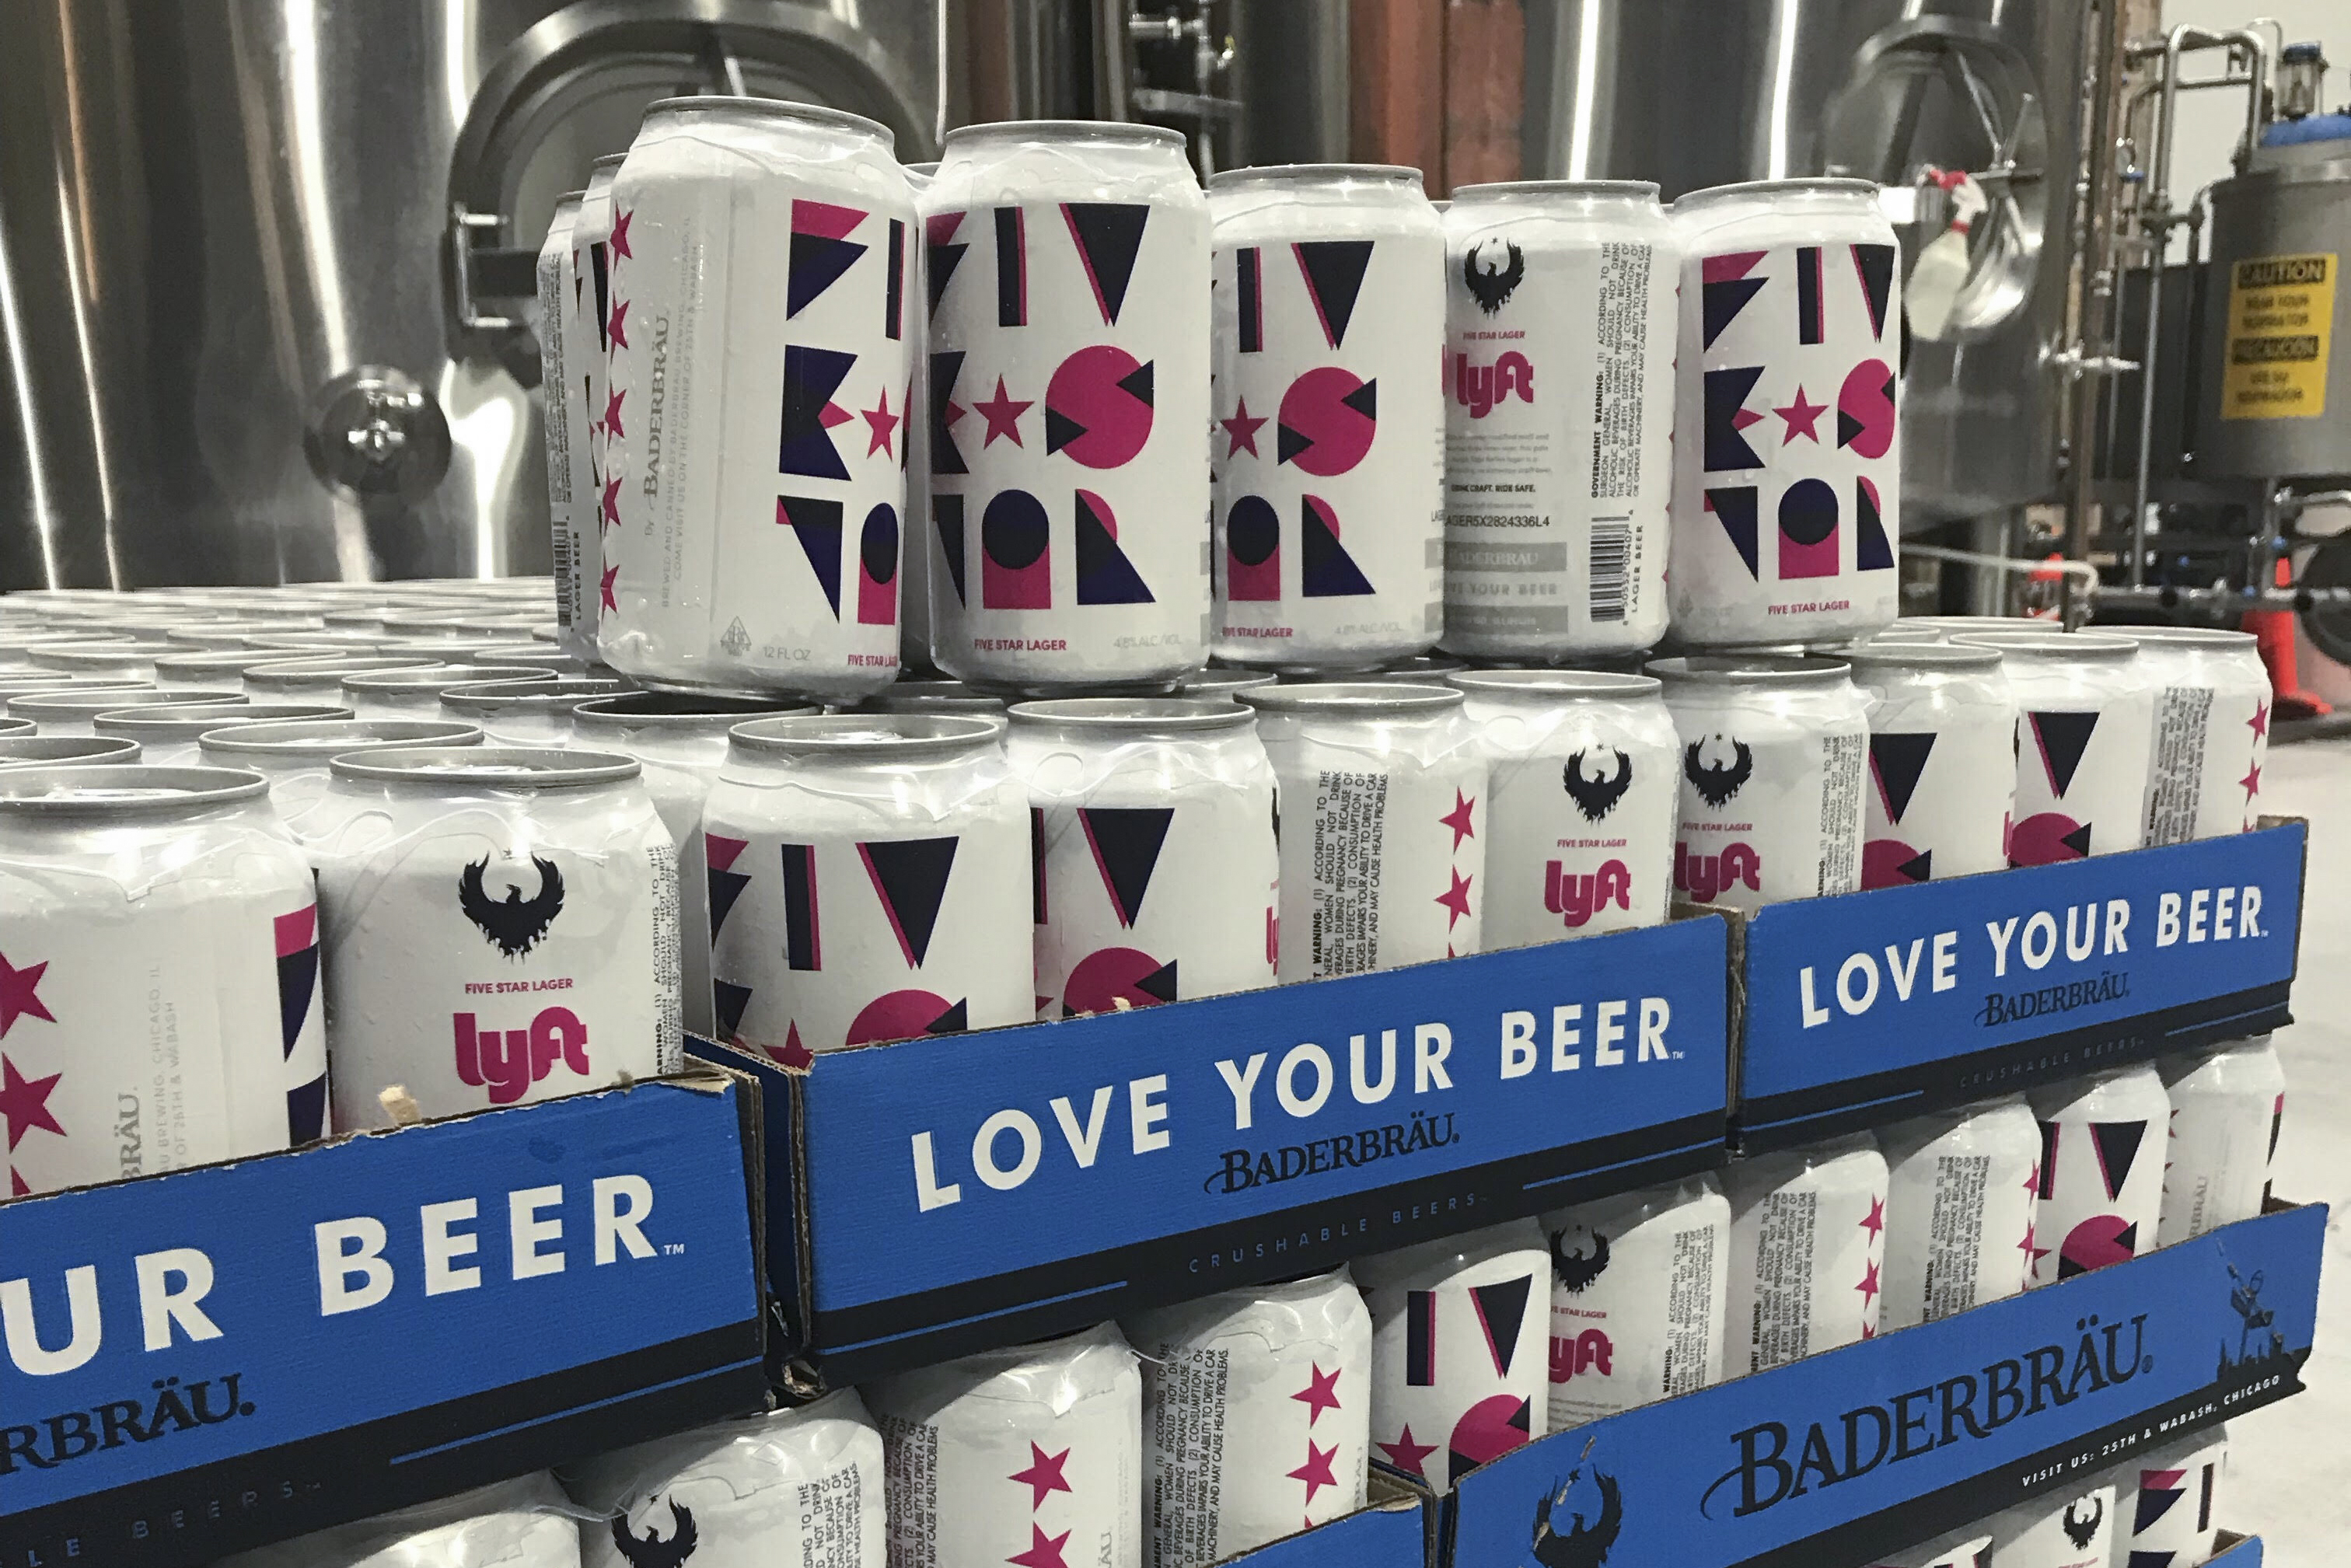 Lyft Branded Beer Will Launch Next Week In Chicago